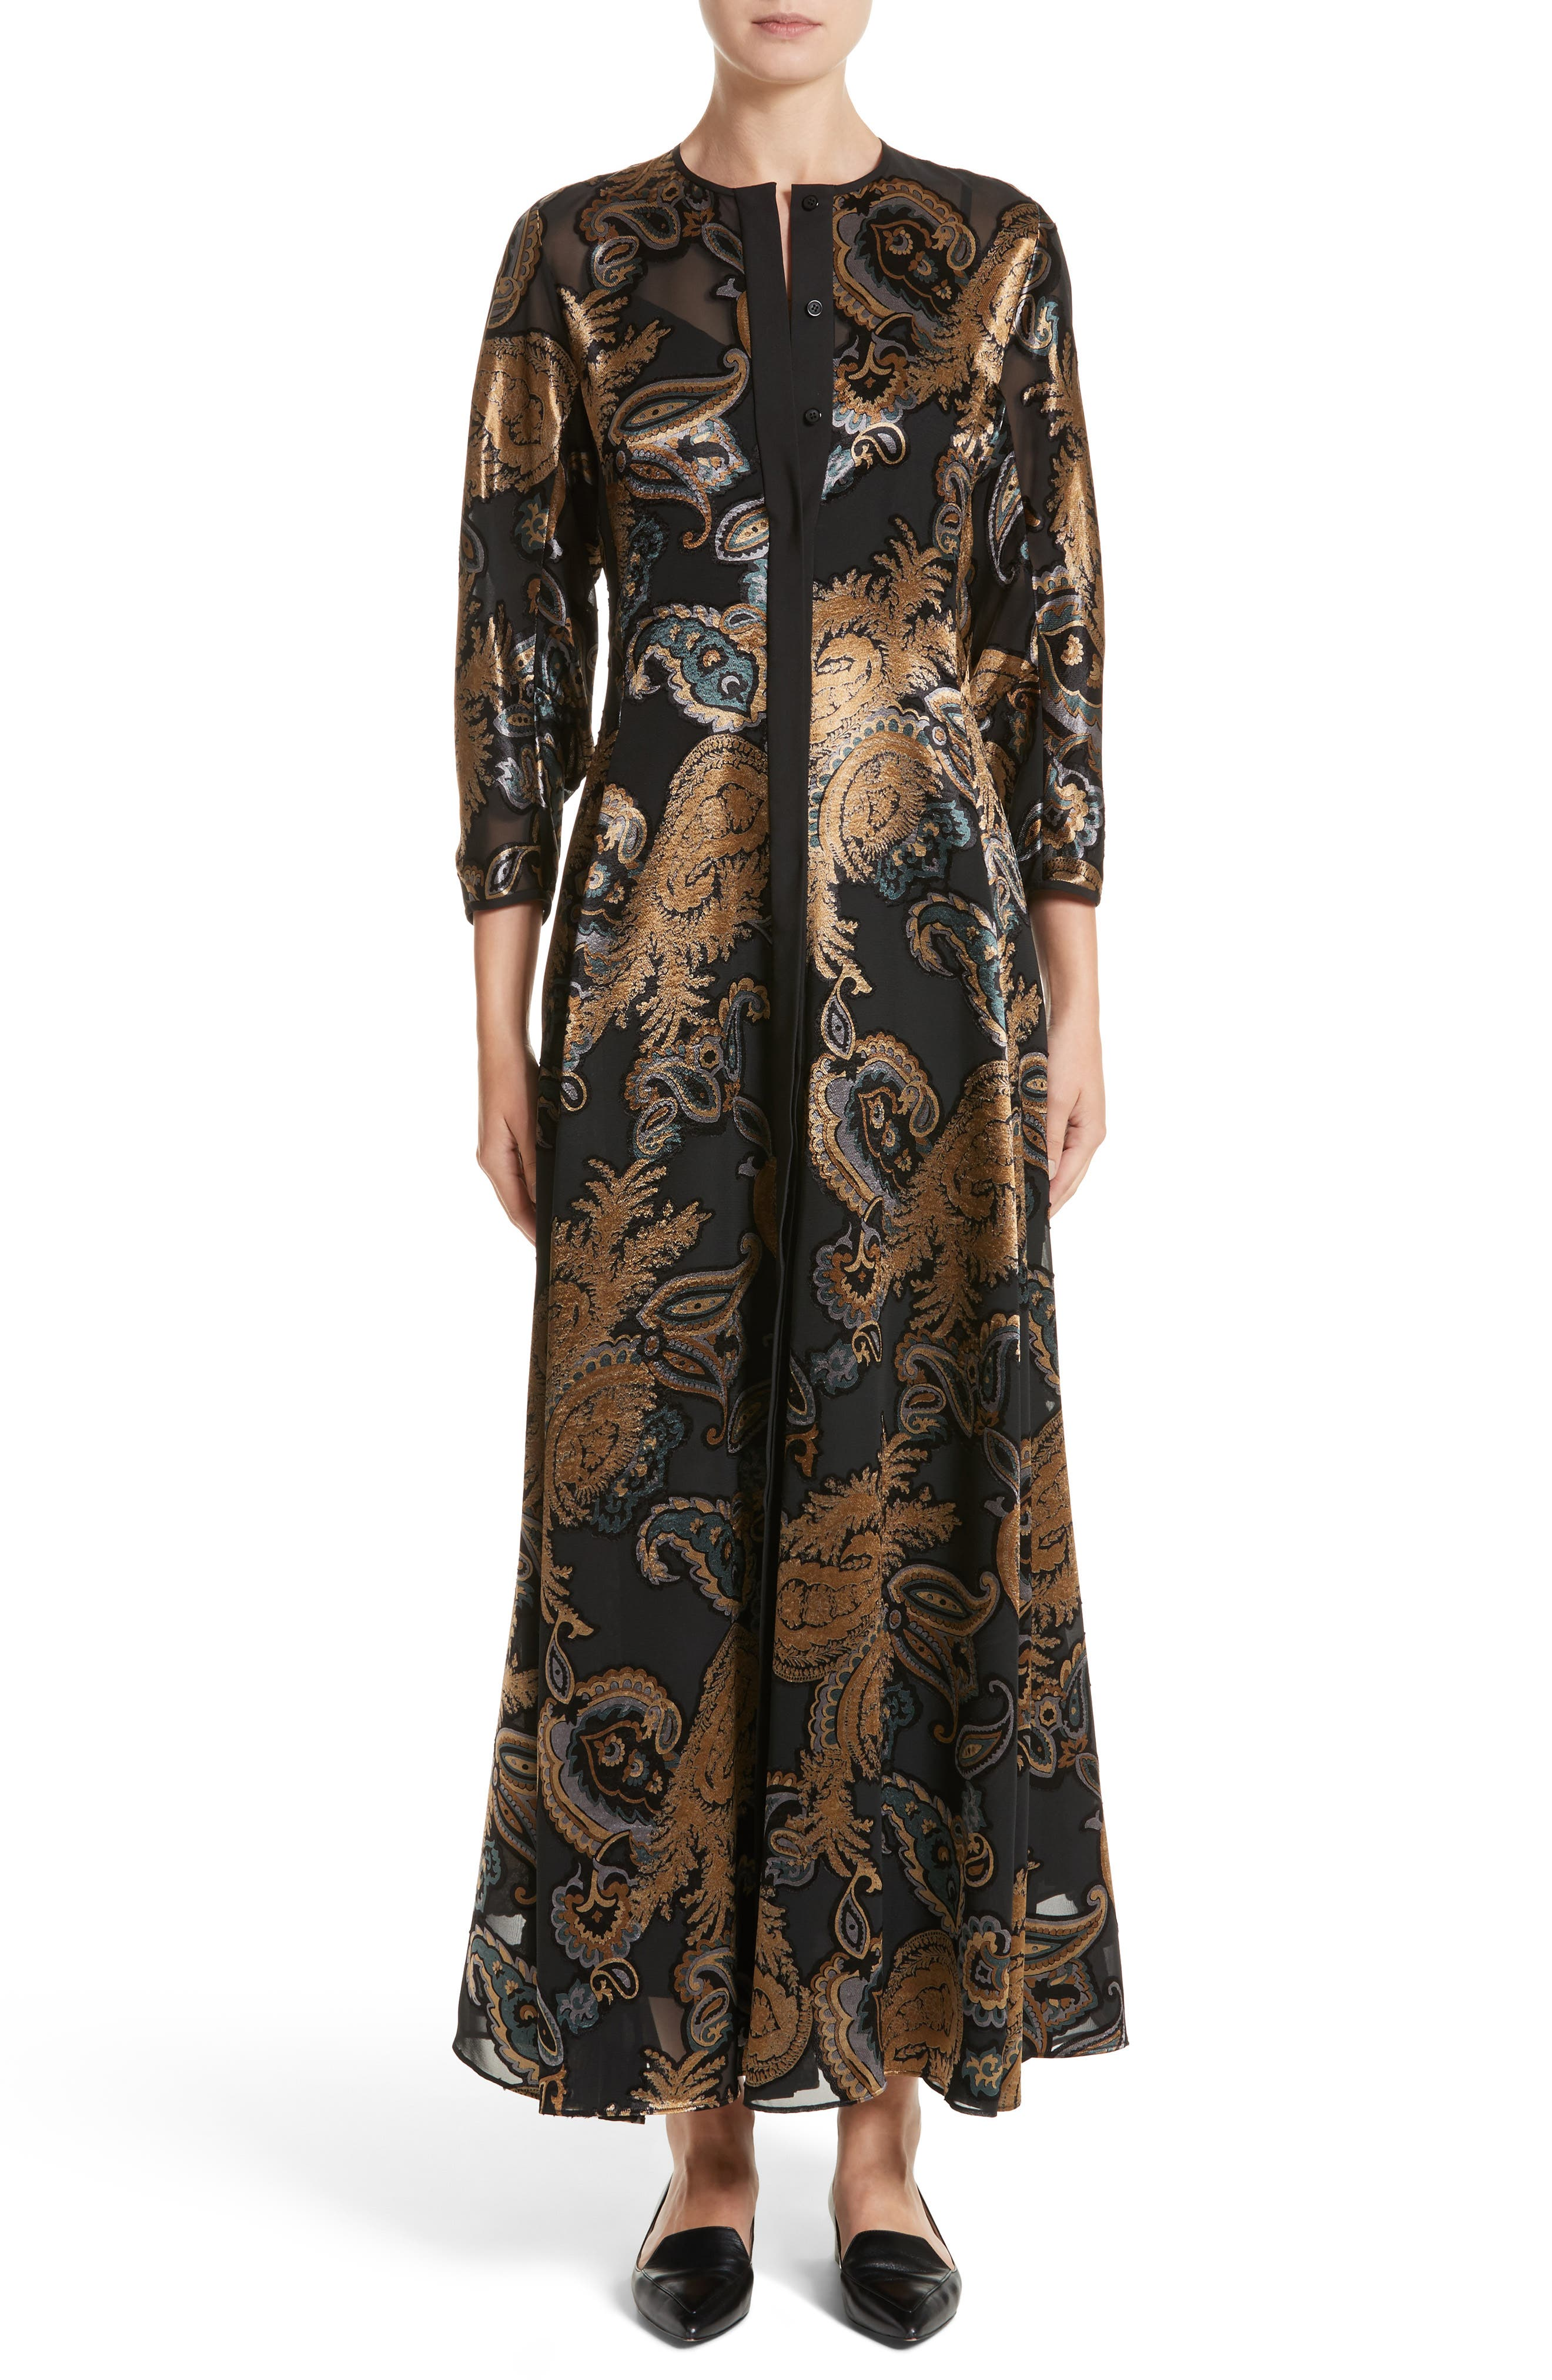 Main Image - Lafayette 148 New York Cadenza Renaissance Paisley Devoré Dress